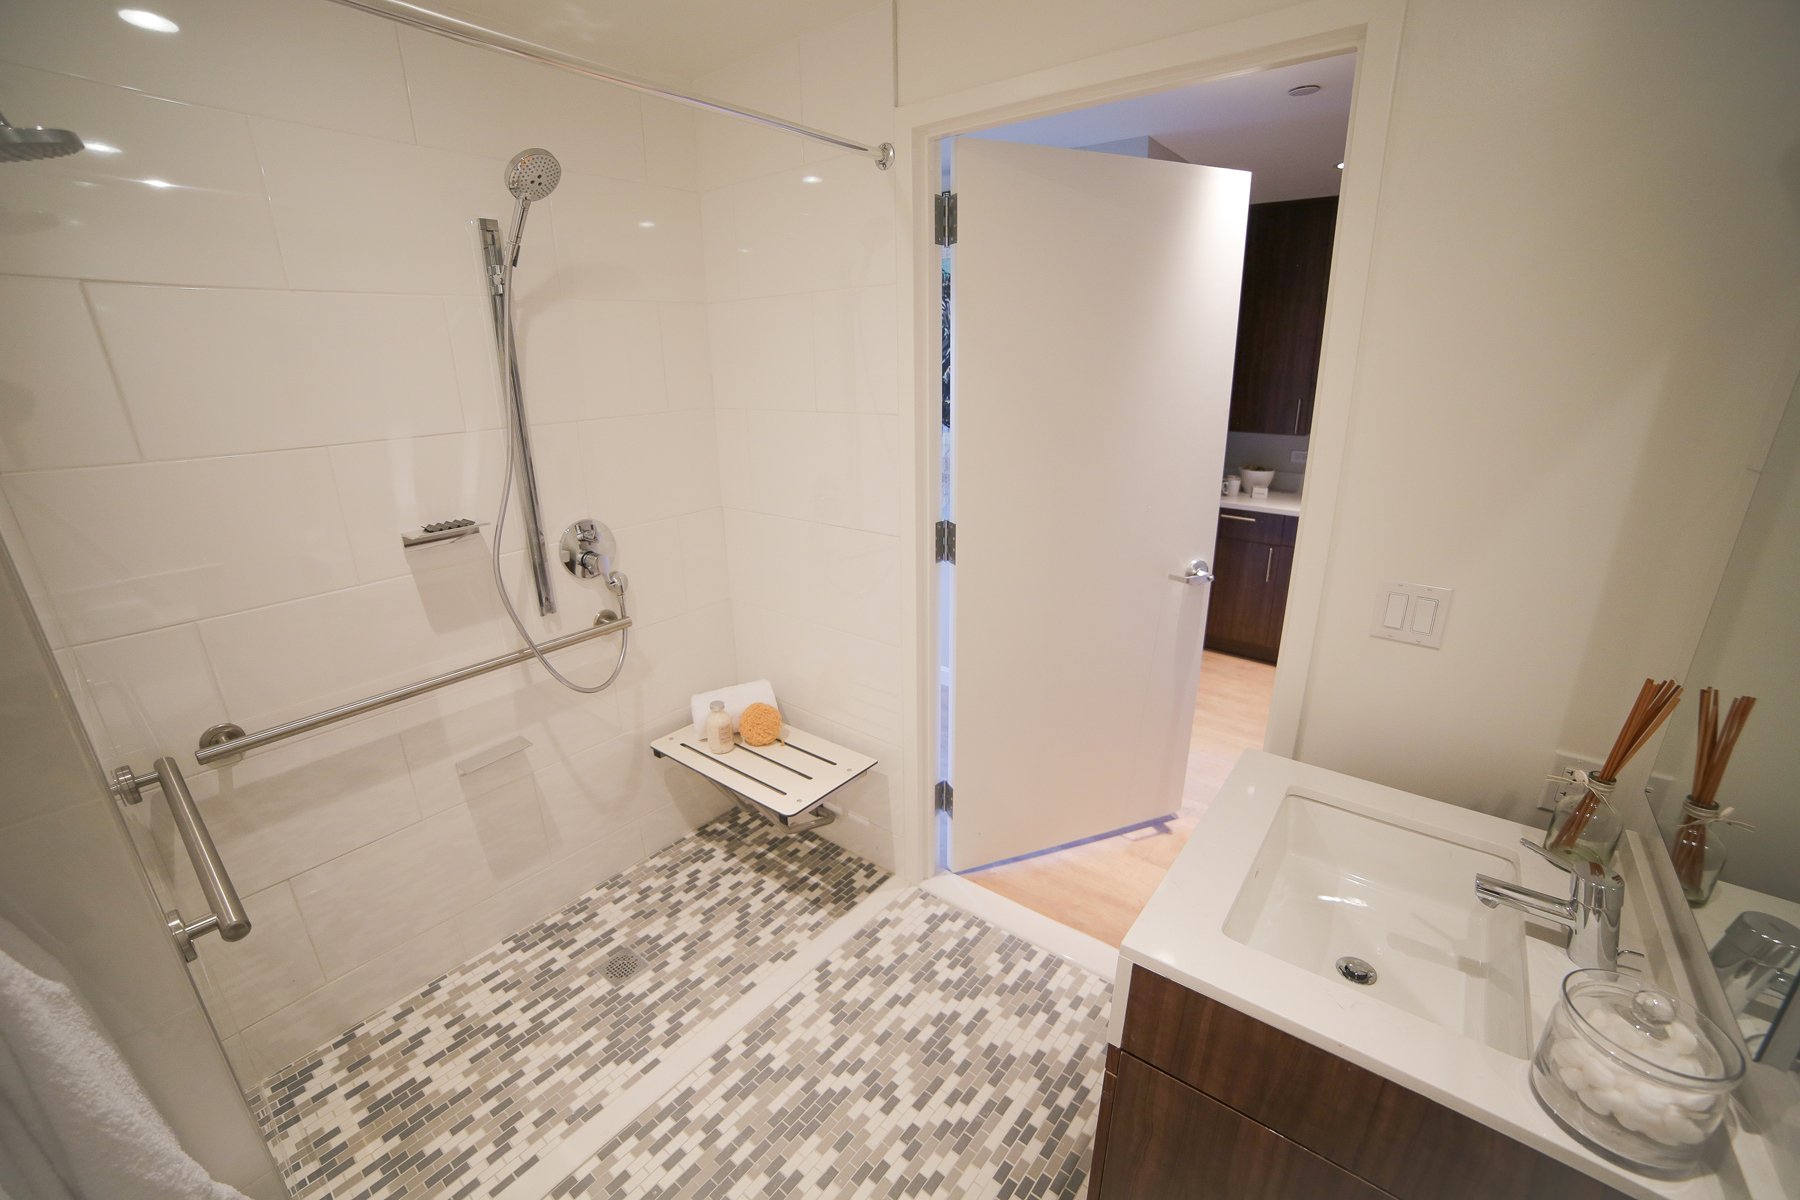 A bathroom featuring a handicap accessible walk-in shower, modern bathroom fixtures, and accessible handrails.